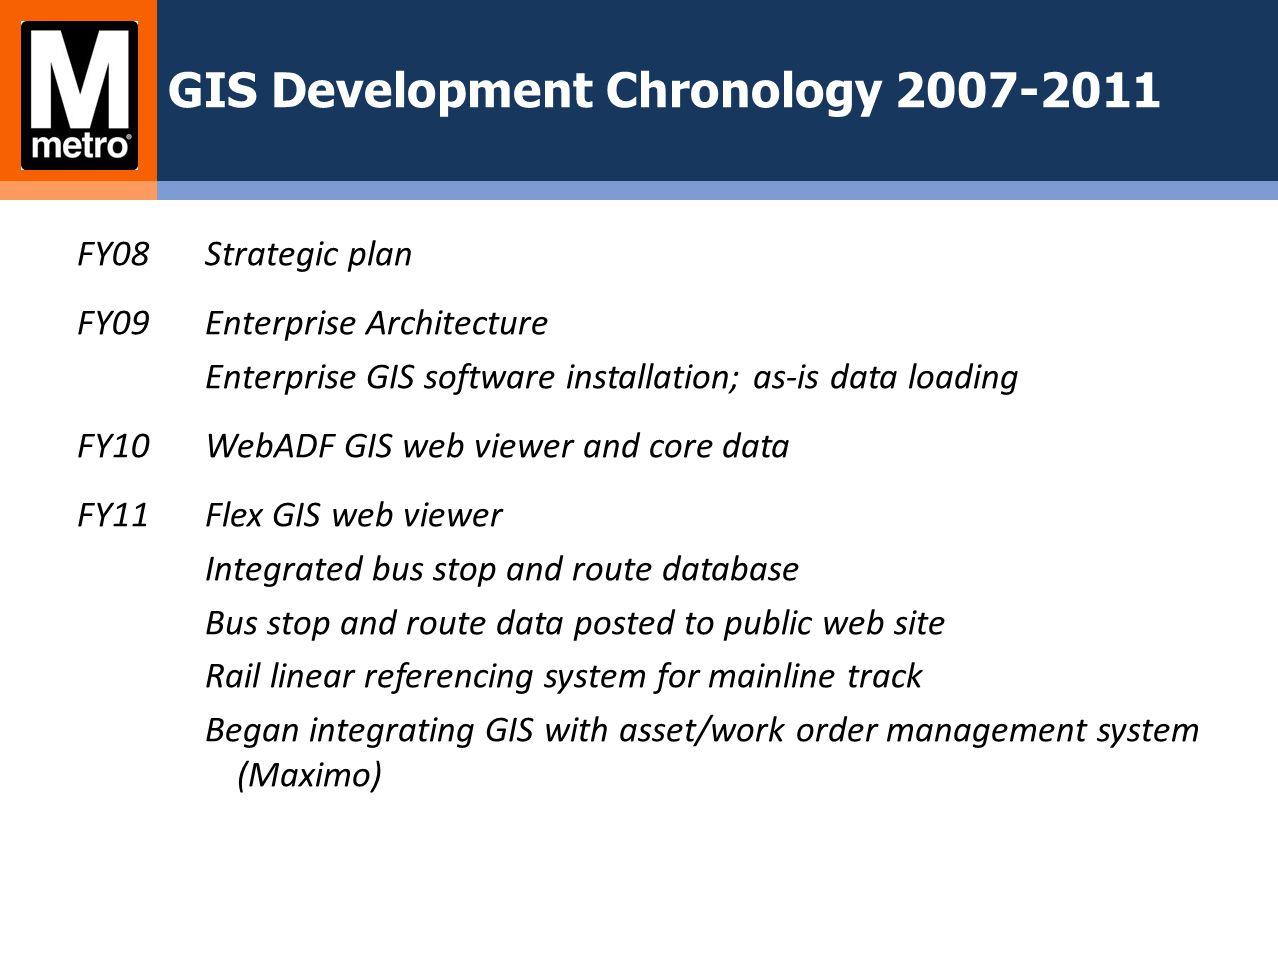 GIS Development Chronology 2007-2011